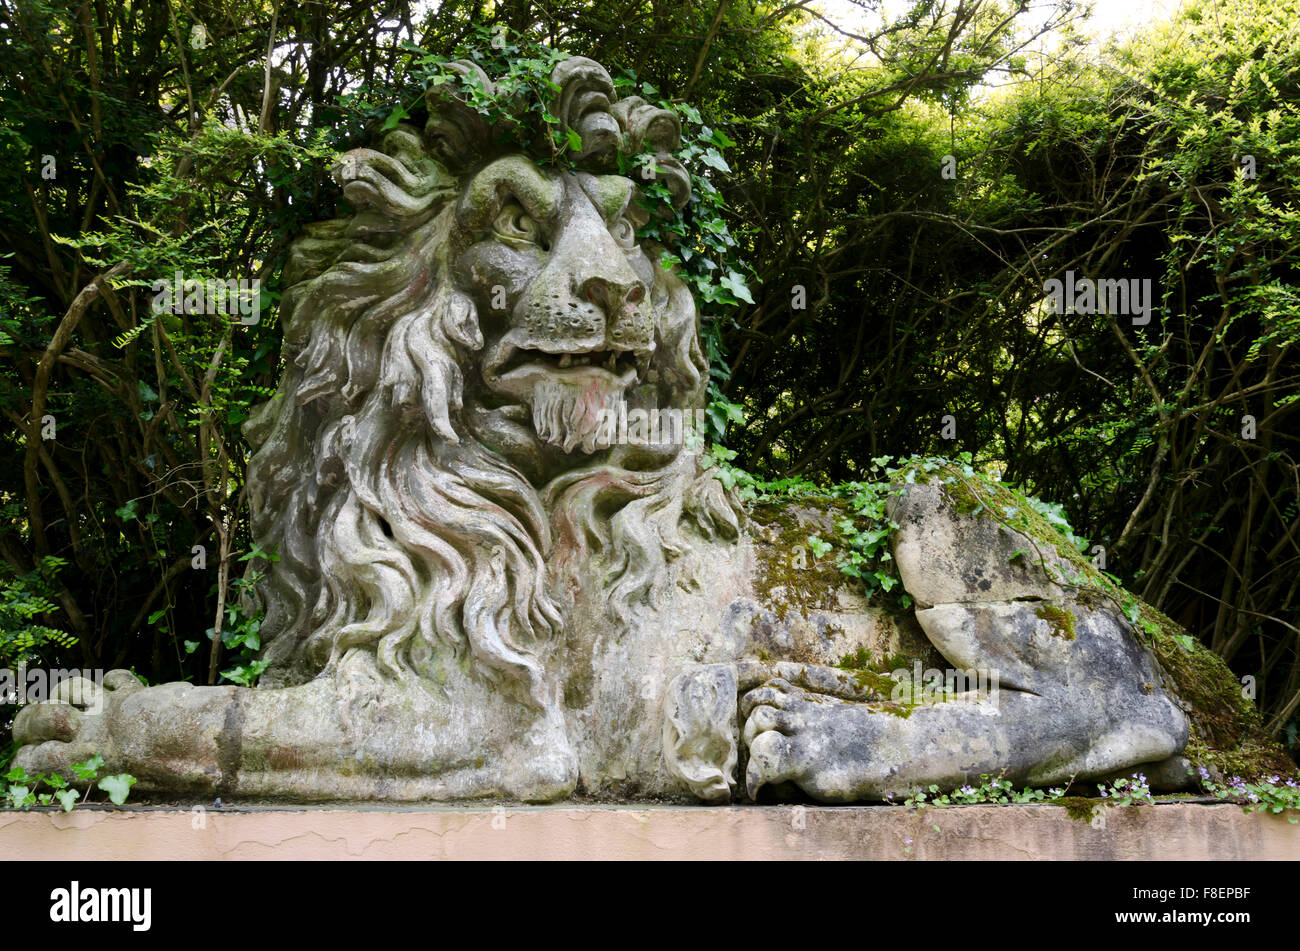 Lion sculpture at Portmeirion, the village in North Wales that featured as 'The Village' in 'The 'Prisoner' - Stock Image